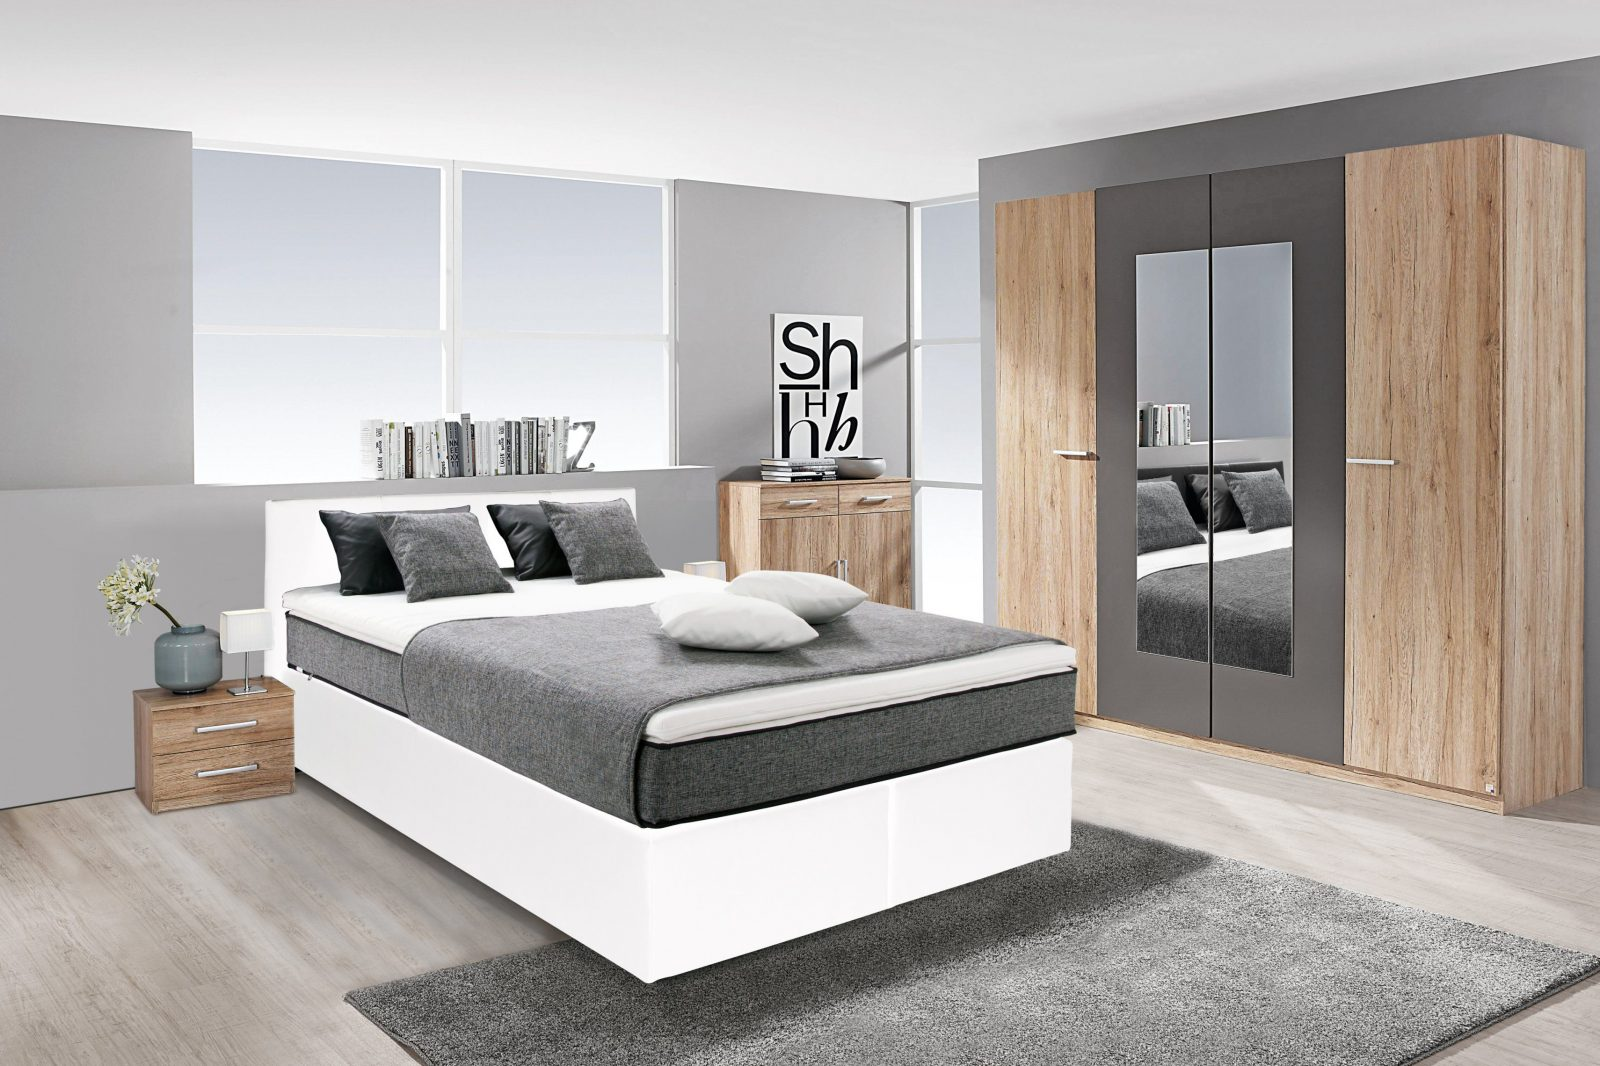 breckle boxspringbett inkl topper haus design ideen. Black Bedroom Furniture Sets. Home Design Ideas